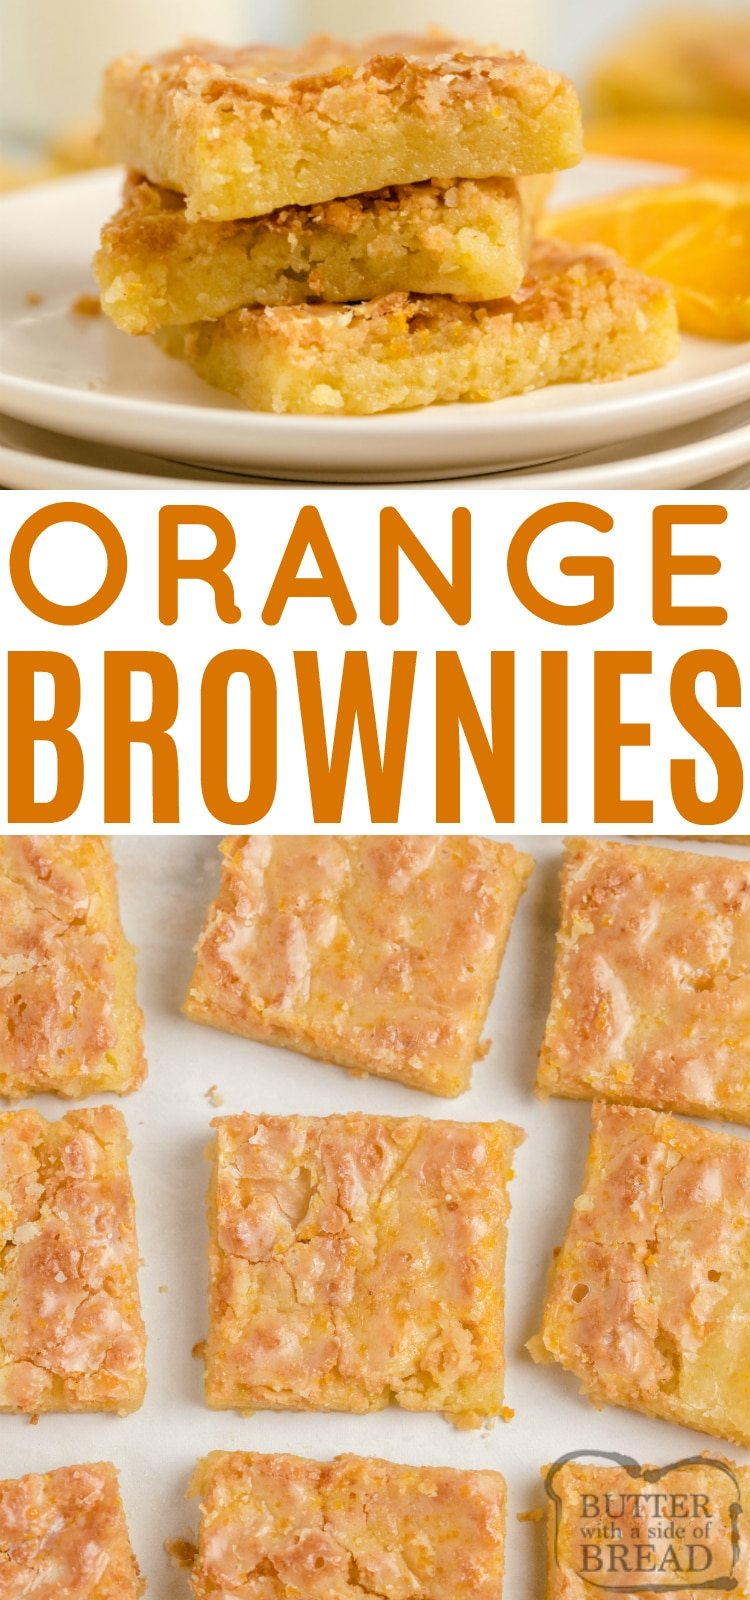 Glazed Orange Brownies are full of orange flavor in a soft and chewy dessert bar recipe. These orange brownies are even more delicious with a simple orange glaze on top!